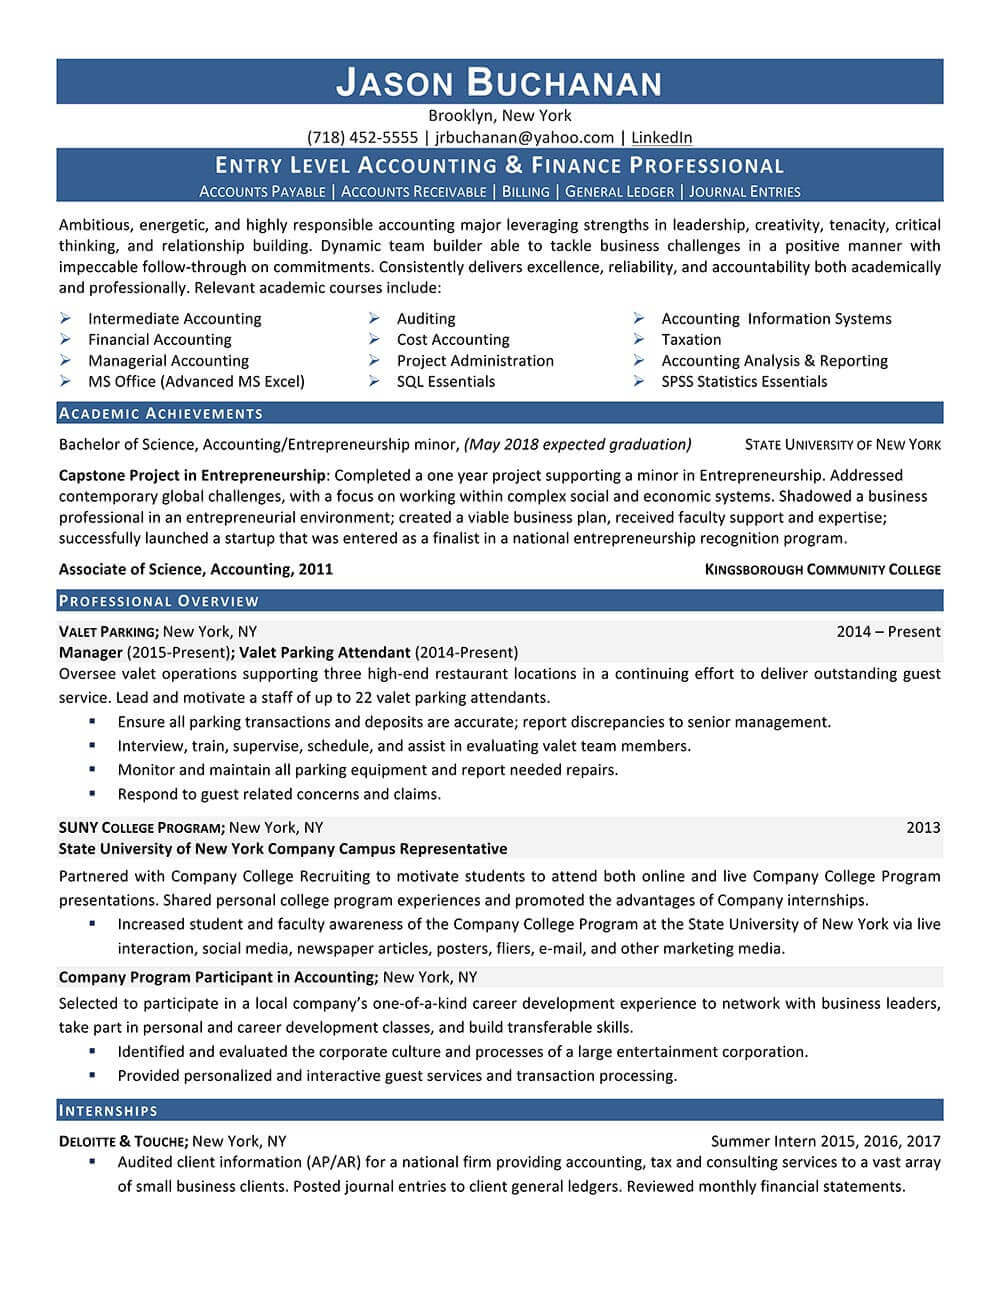 professional resume writing services monster after project architect sample student Resume Online Resume Writing Services